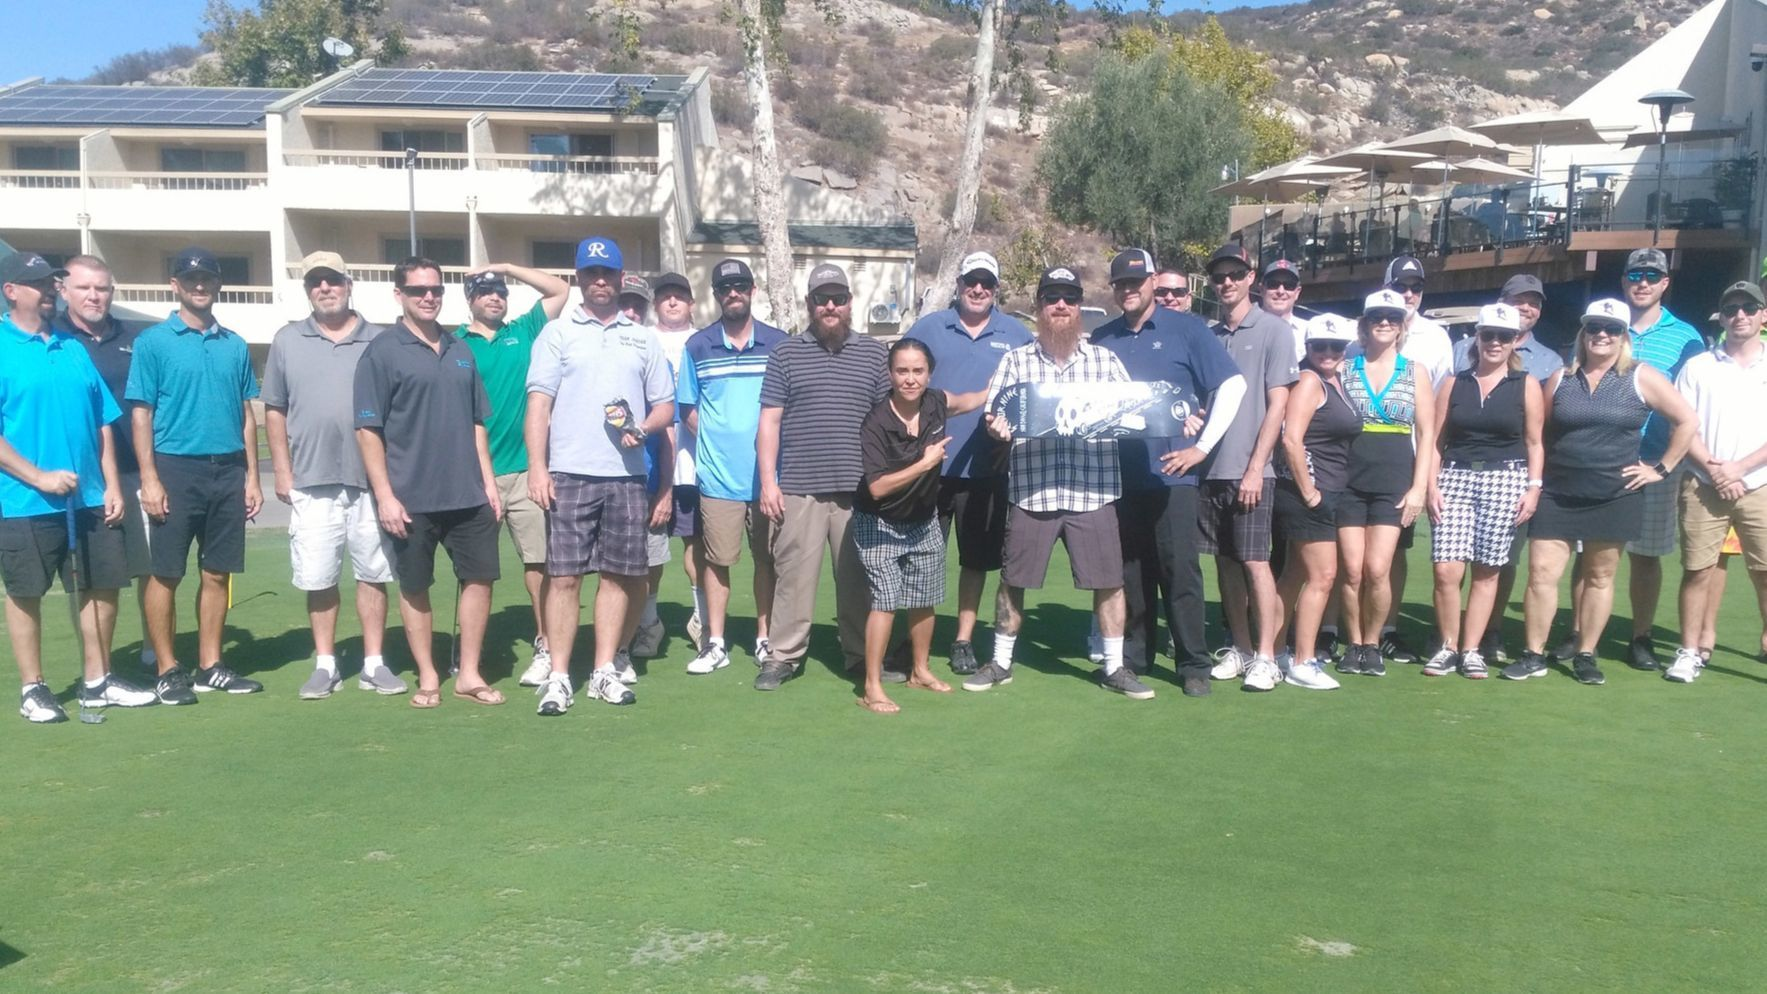 About 30 golfers prepare to start the Ramona Skatepark Golf Tournament held as a fundraiser at San Vicente Golf Resort on Nov. 3. About $250,000 has been raised toward the goal.